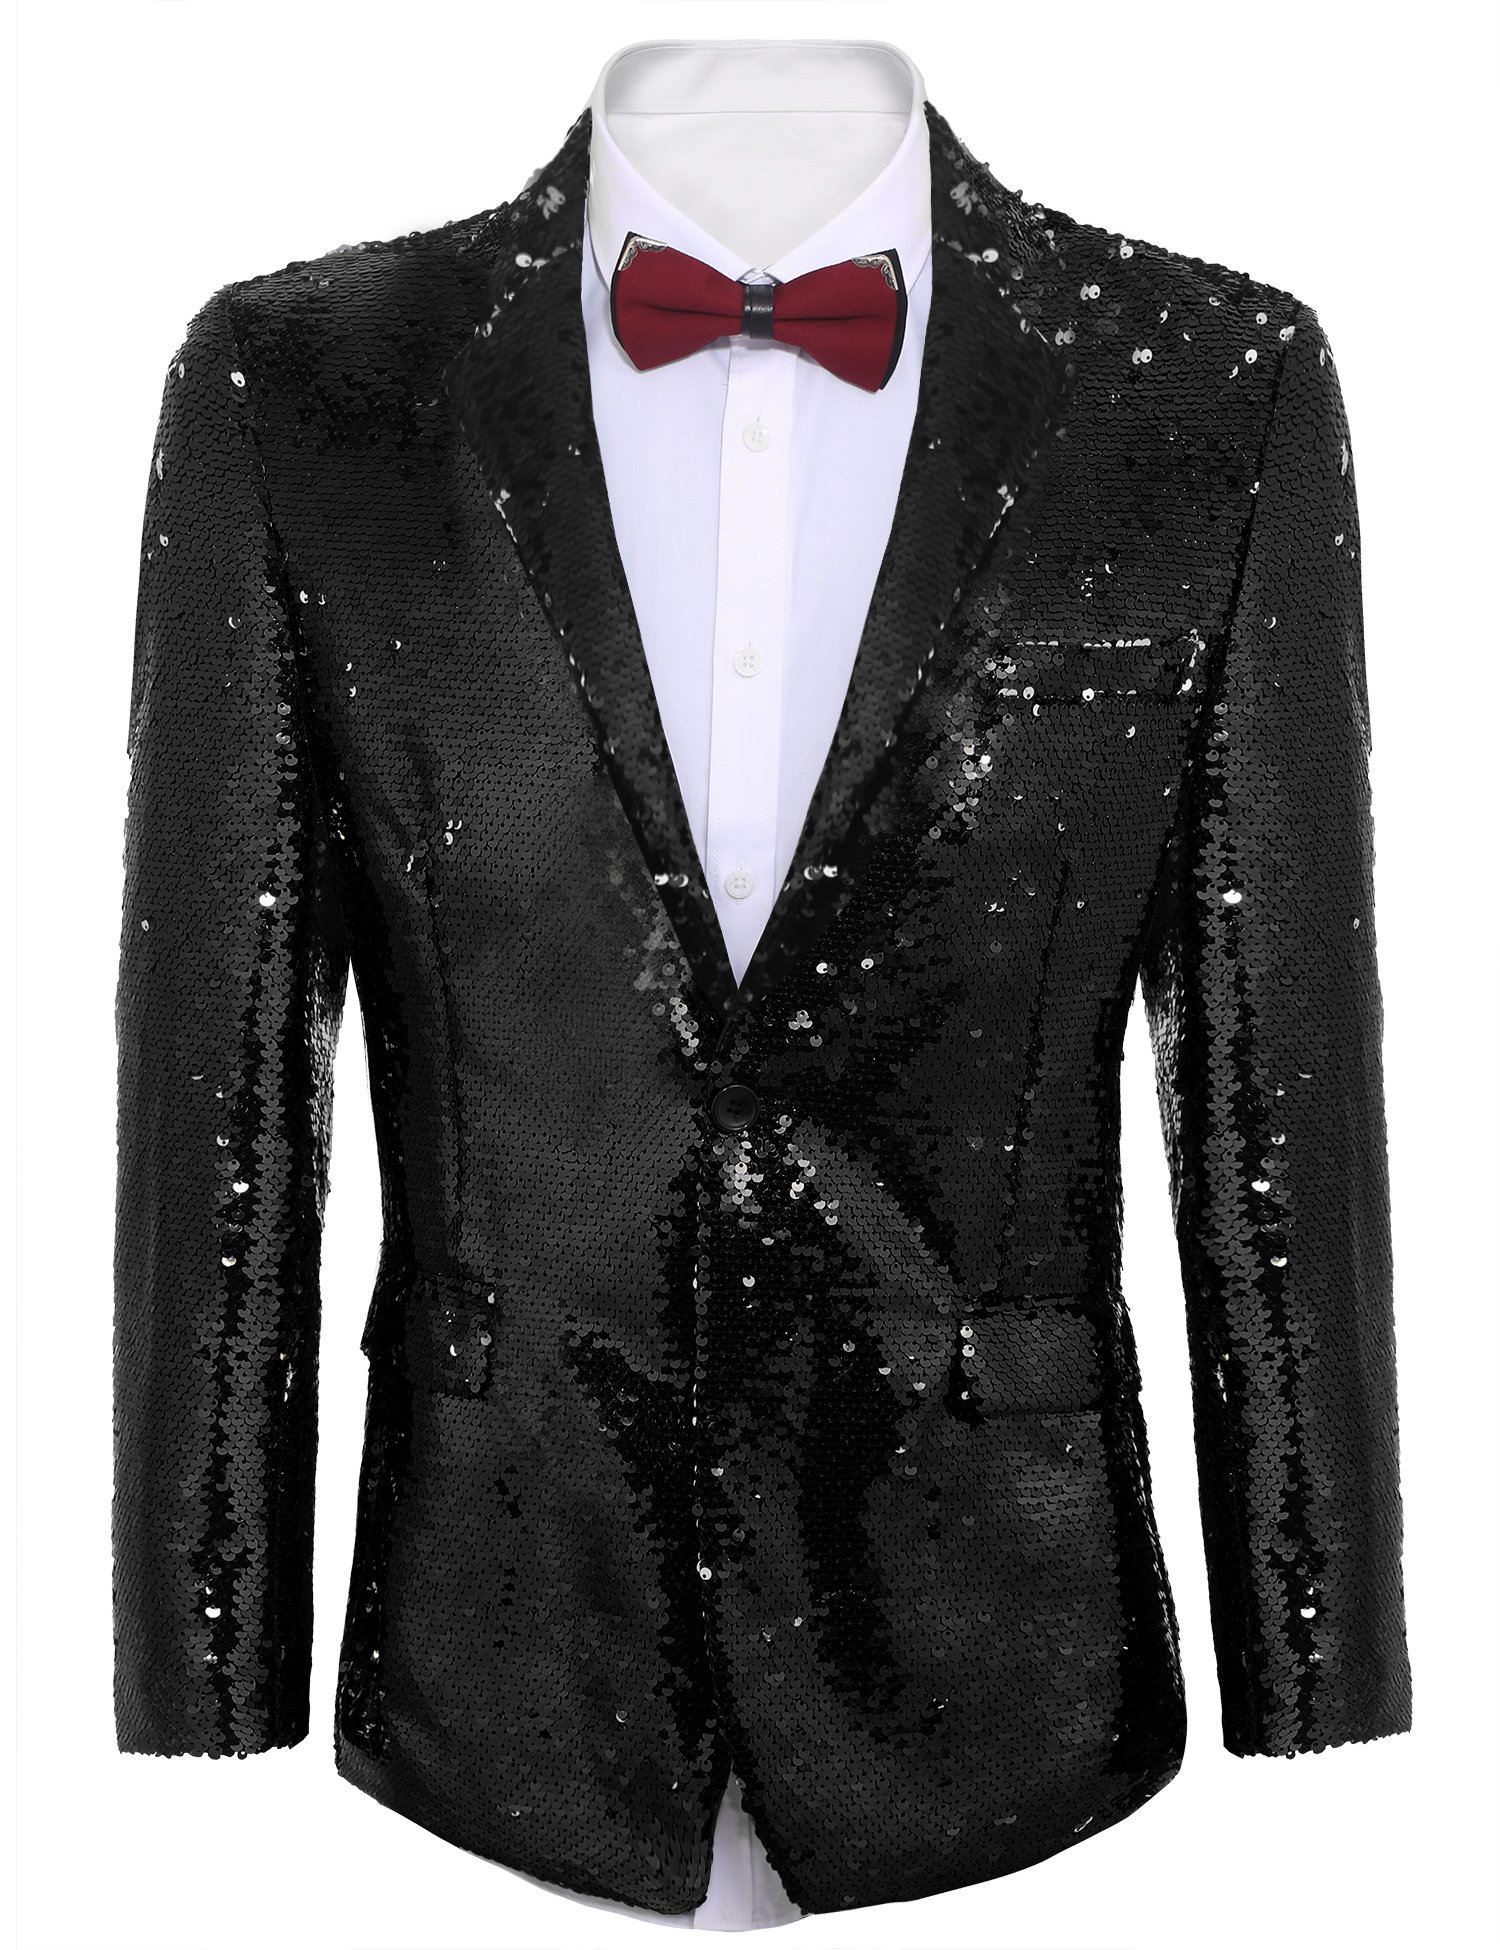 Coofandy Shiny Sequins Suit Jacket Blazer One Button Tuxedo For Party,Wedding,Banquet,Christmas,Nightclub Black X-Large